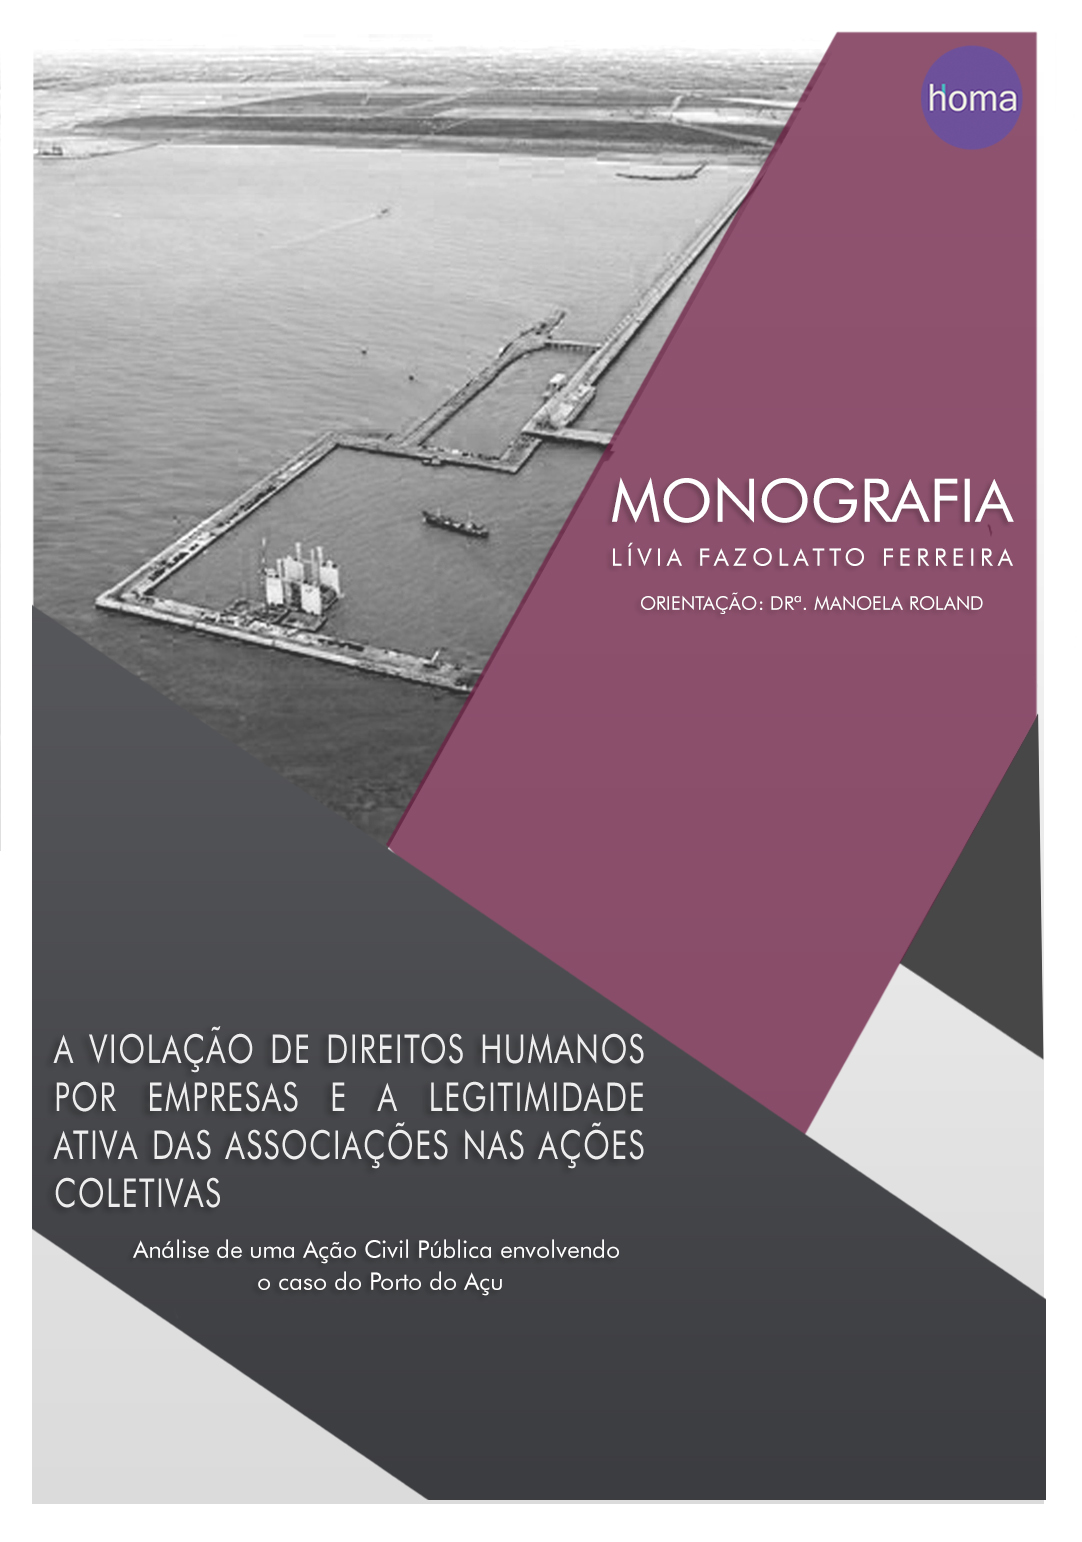 The violation of Human Rights by companies and the active legitimacy of associations in collective actions: analysis of a Public Civil Action involving the case of the Port of Açu